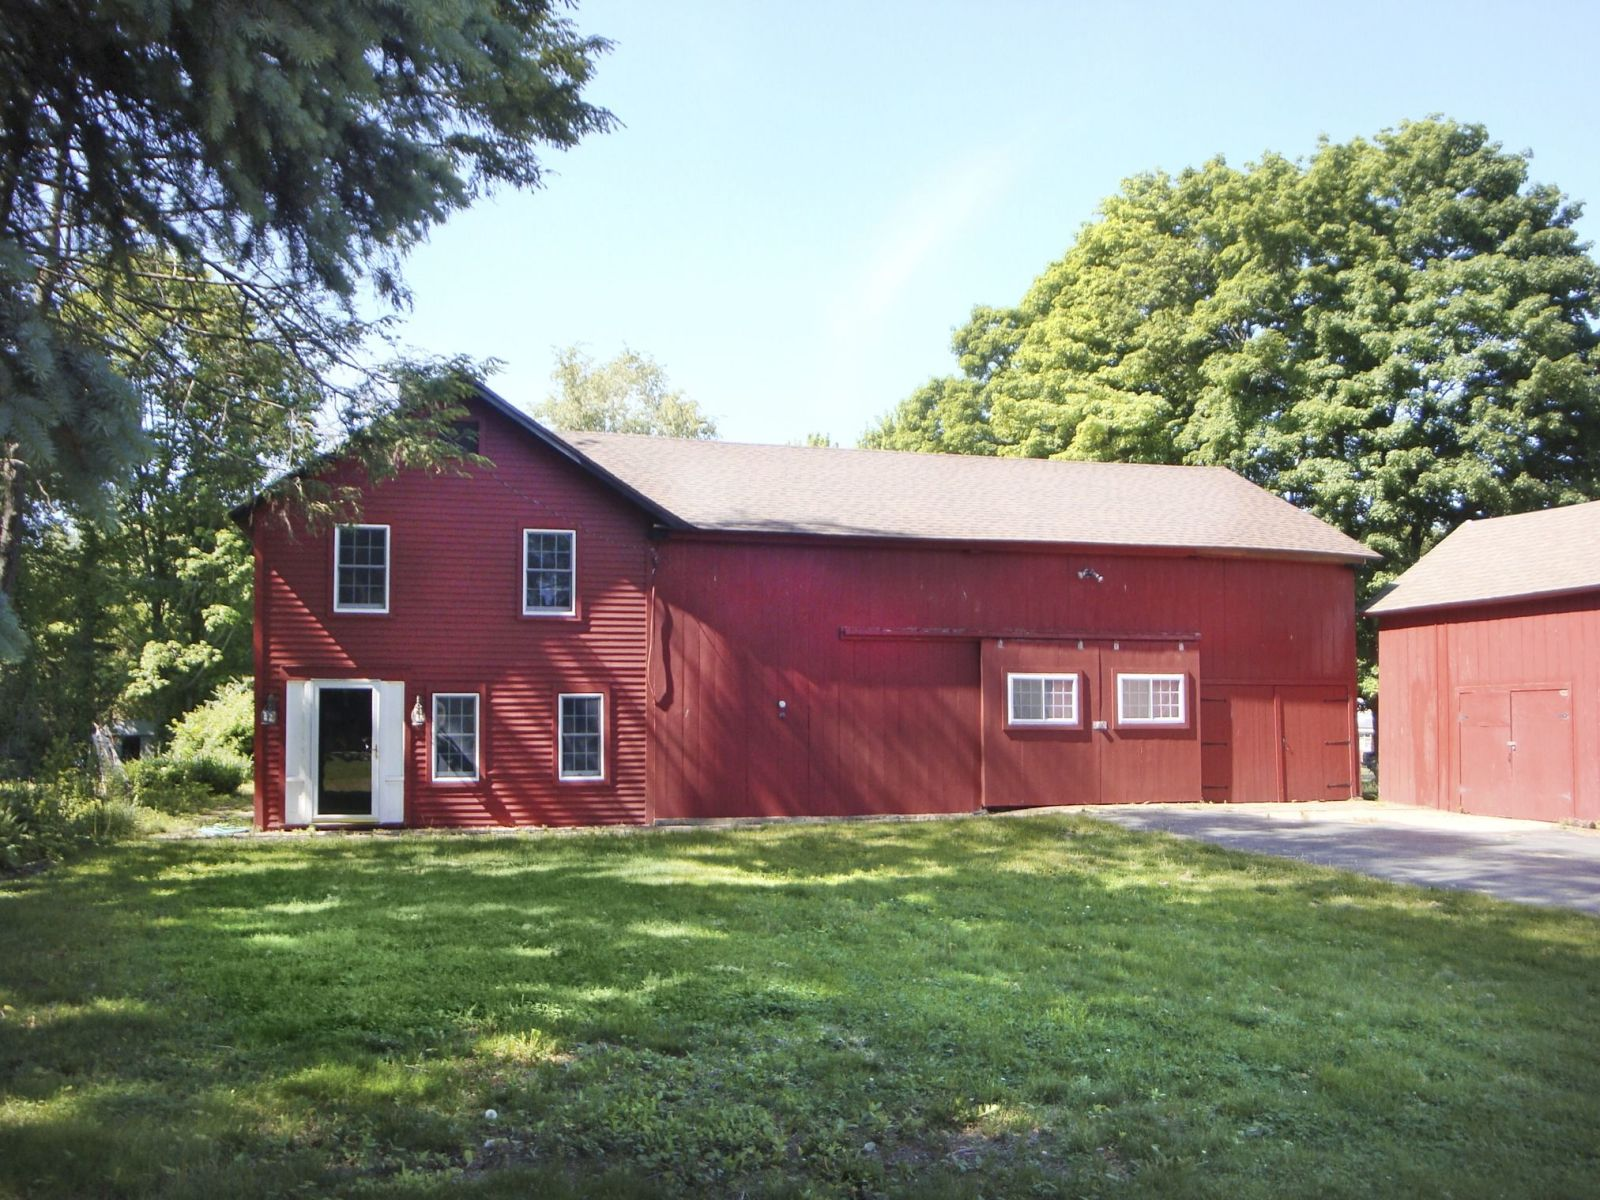 6 barn homes for sale across america barns for sale for Barn home builders near me